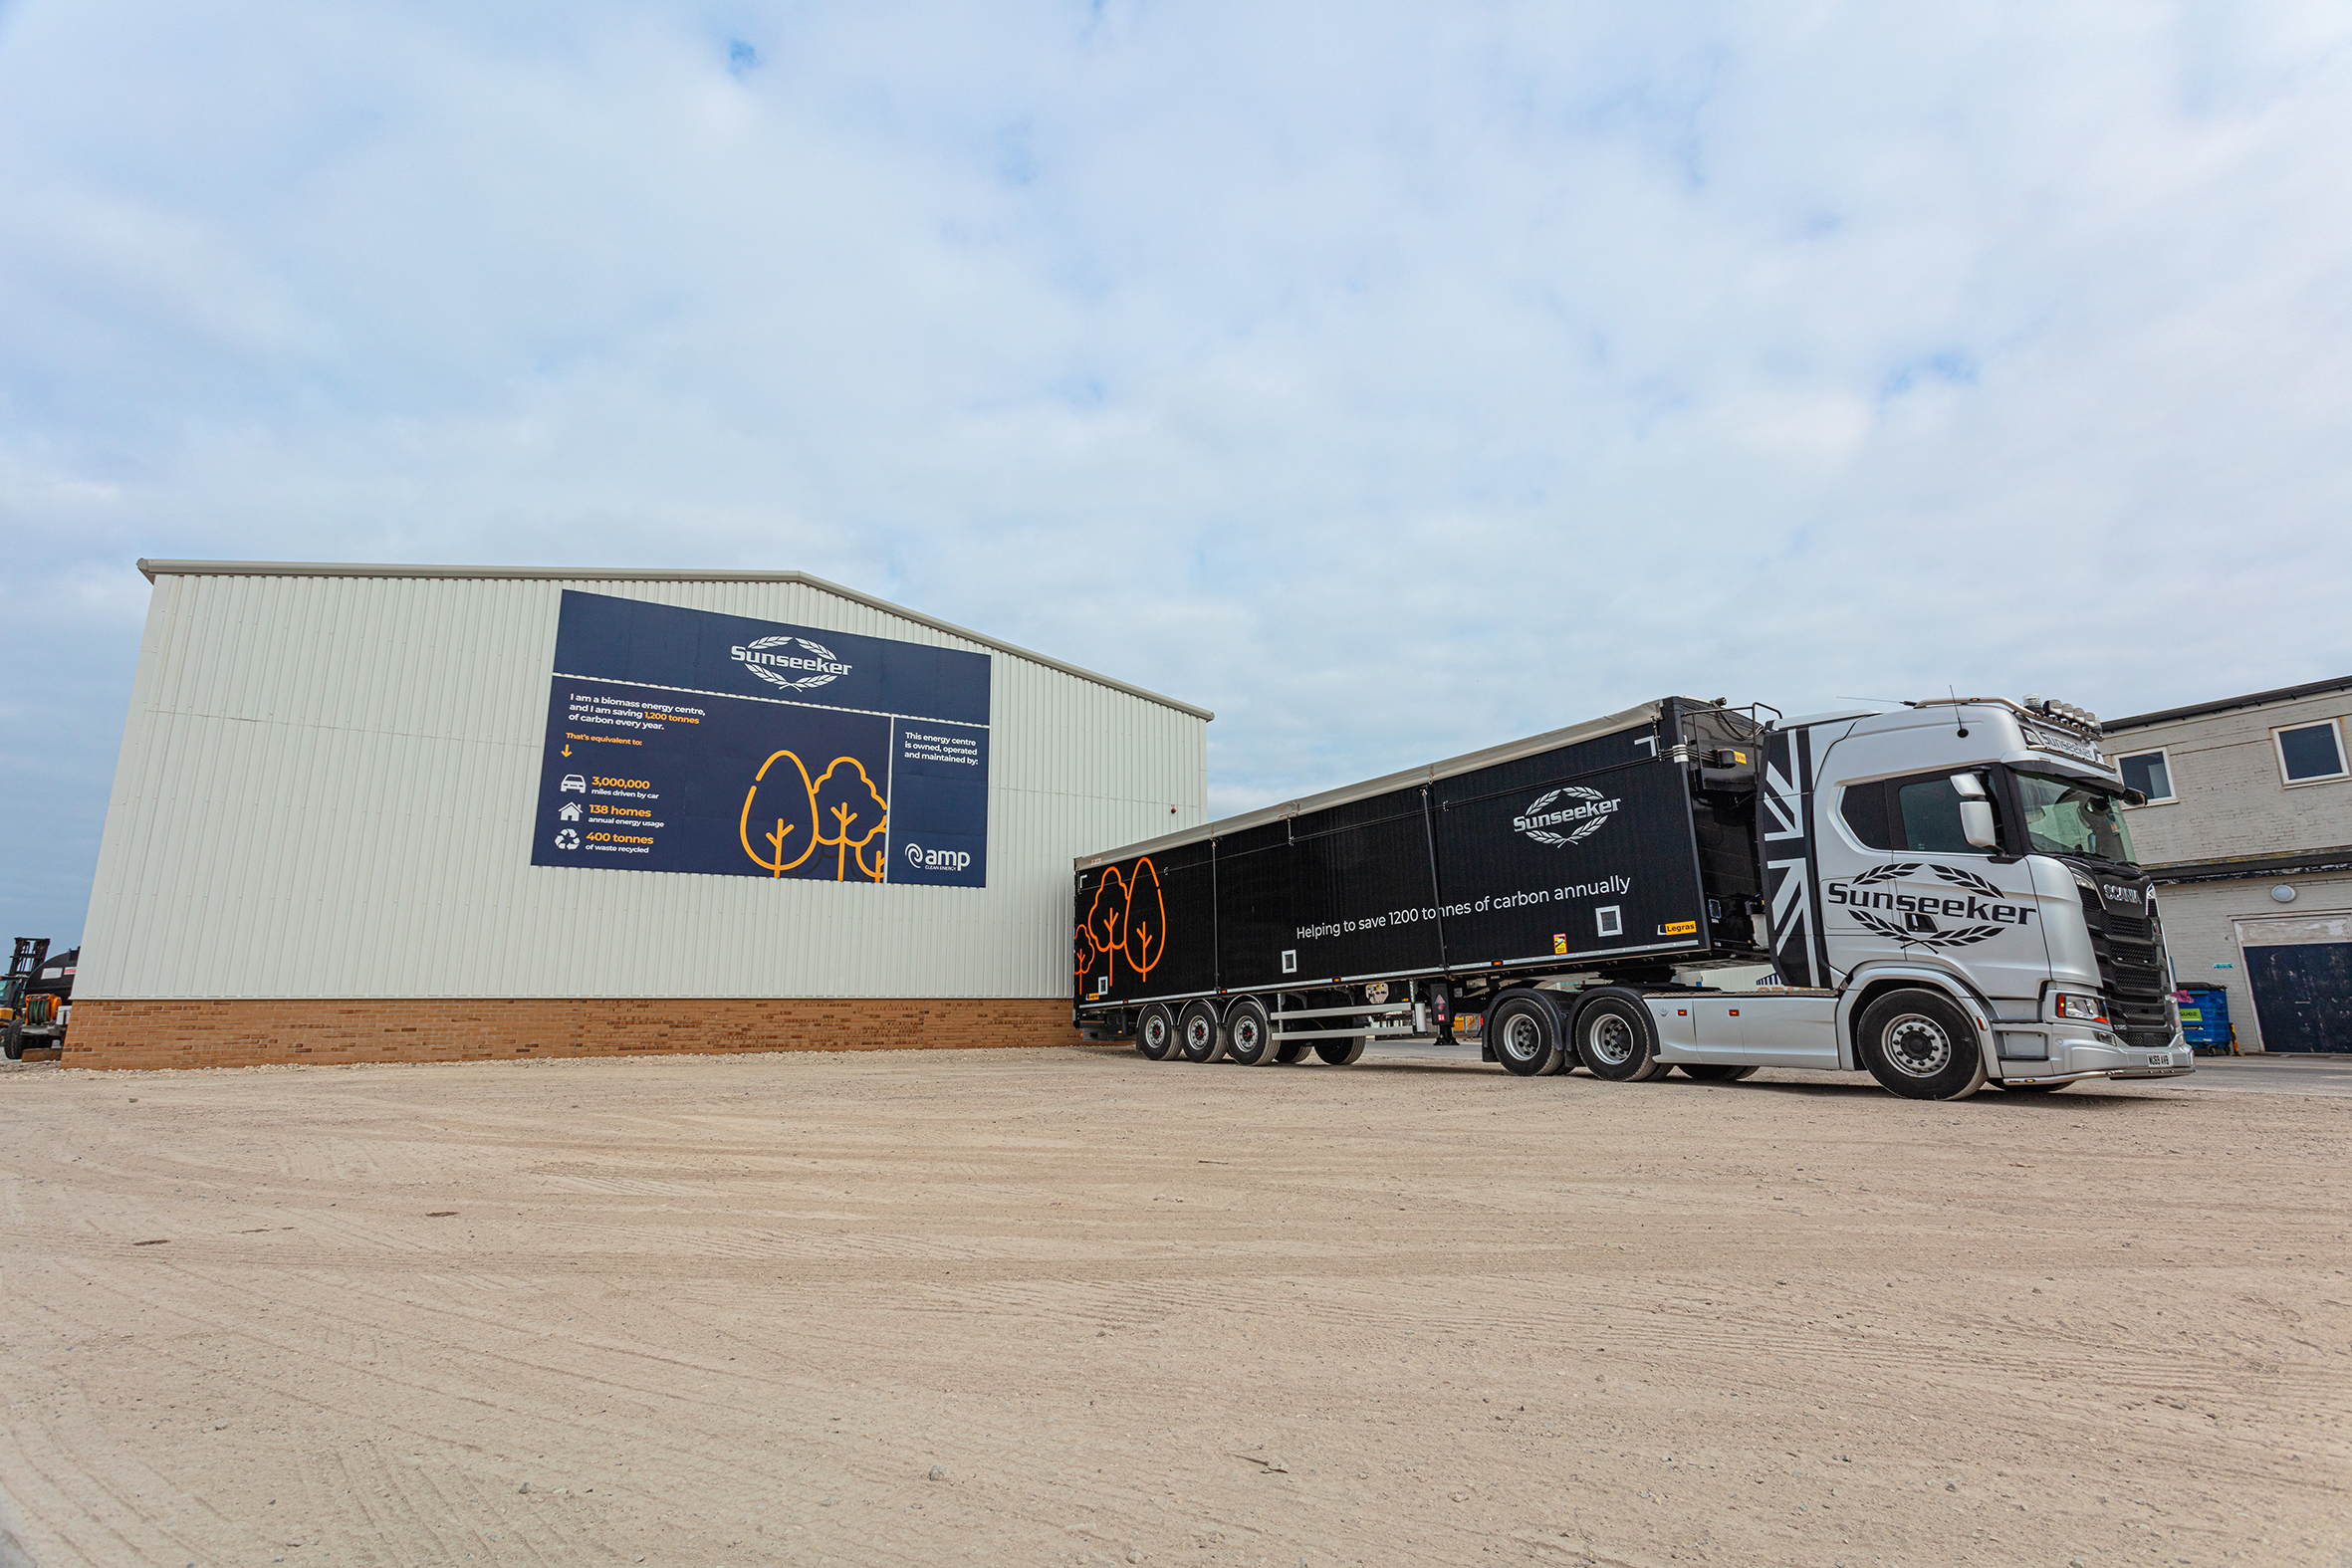 Sunseeker AMP facility with truck alternate angle